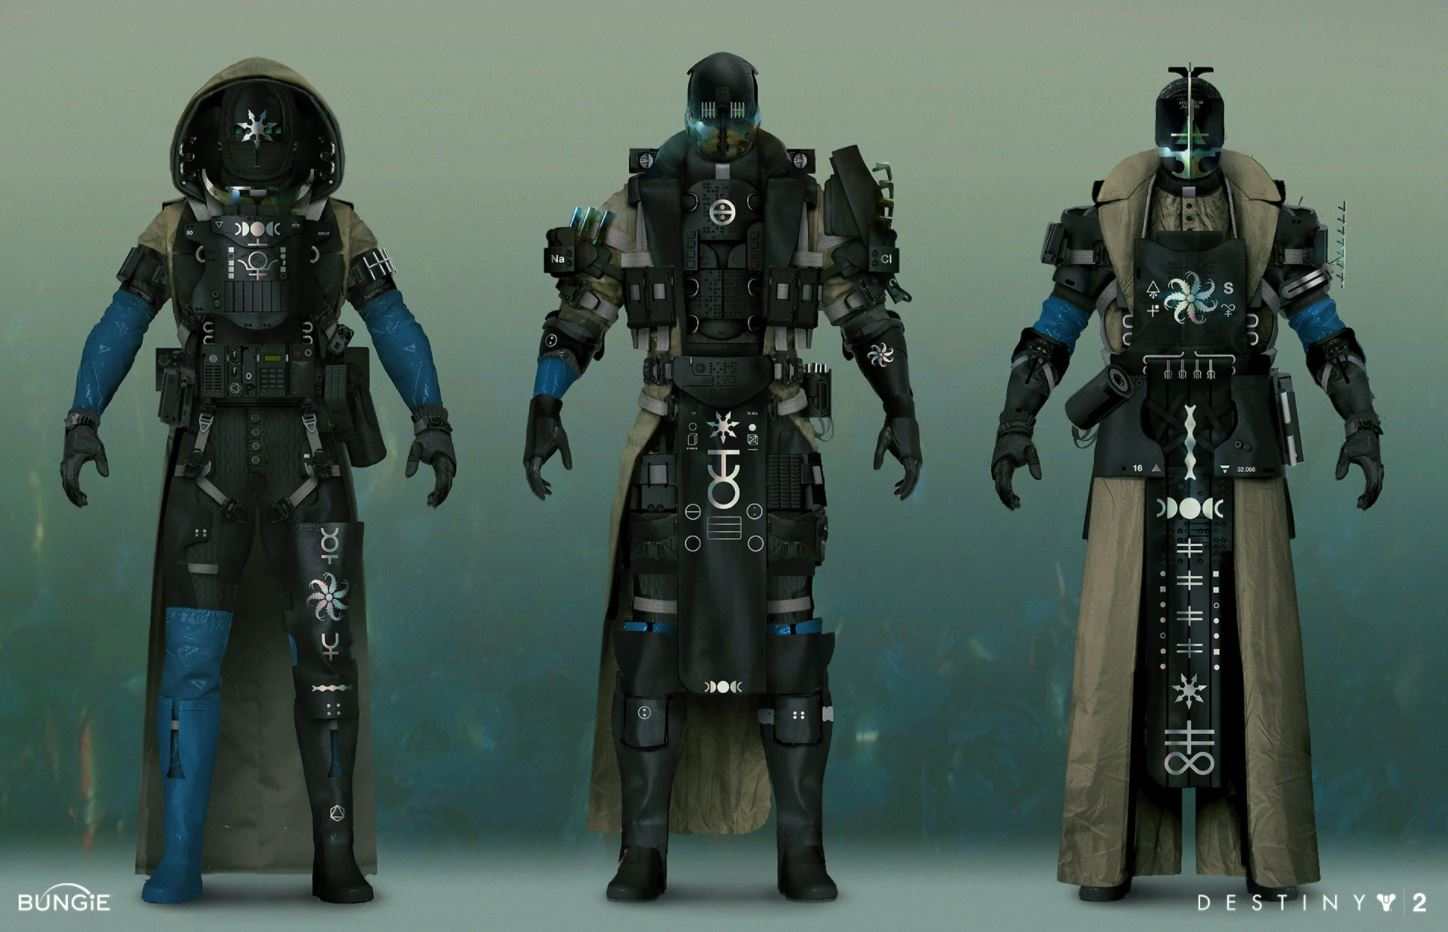 destiny-2-the-witch-queen-expansion-delayed-to-early-2022-major-changes-coming-to-the-game-in-2021